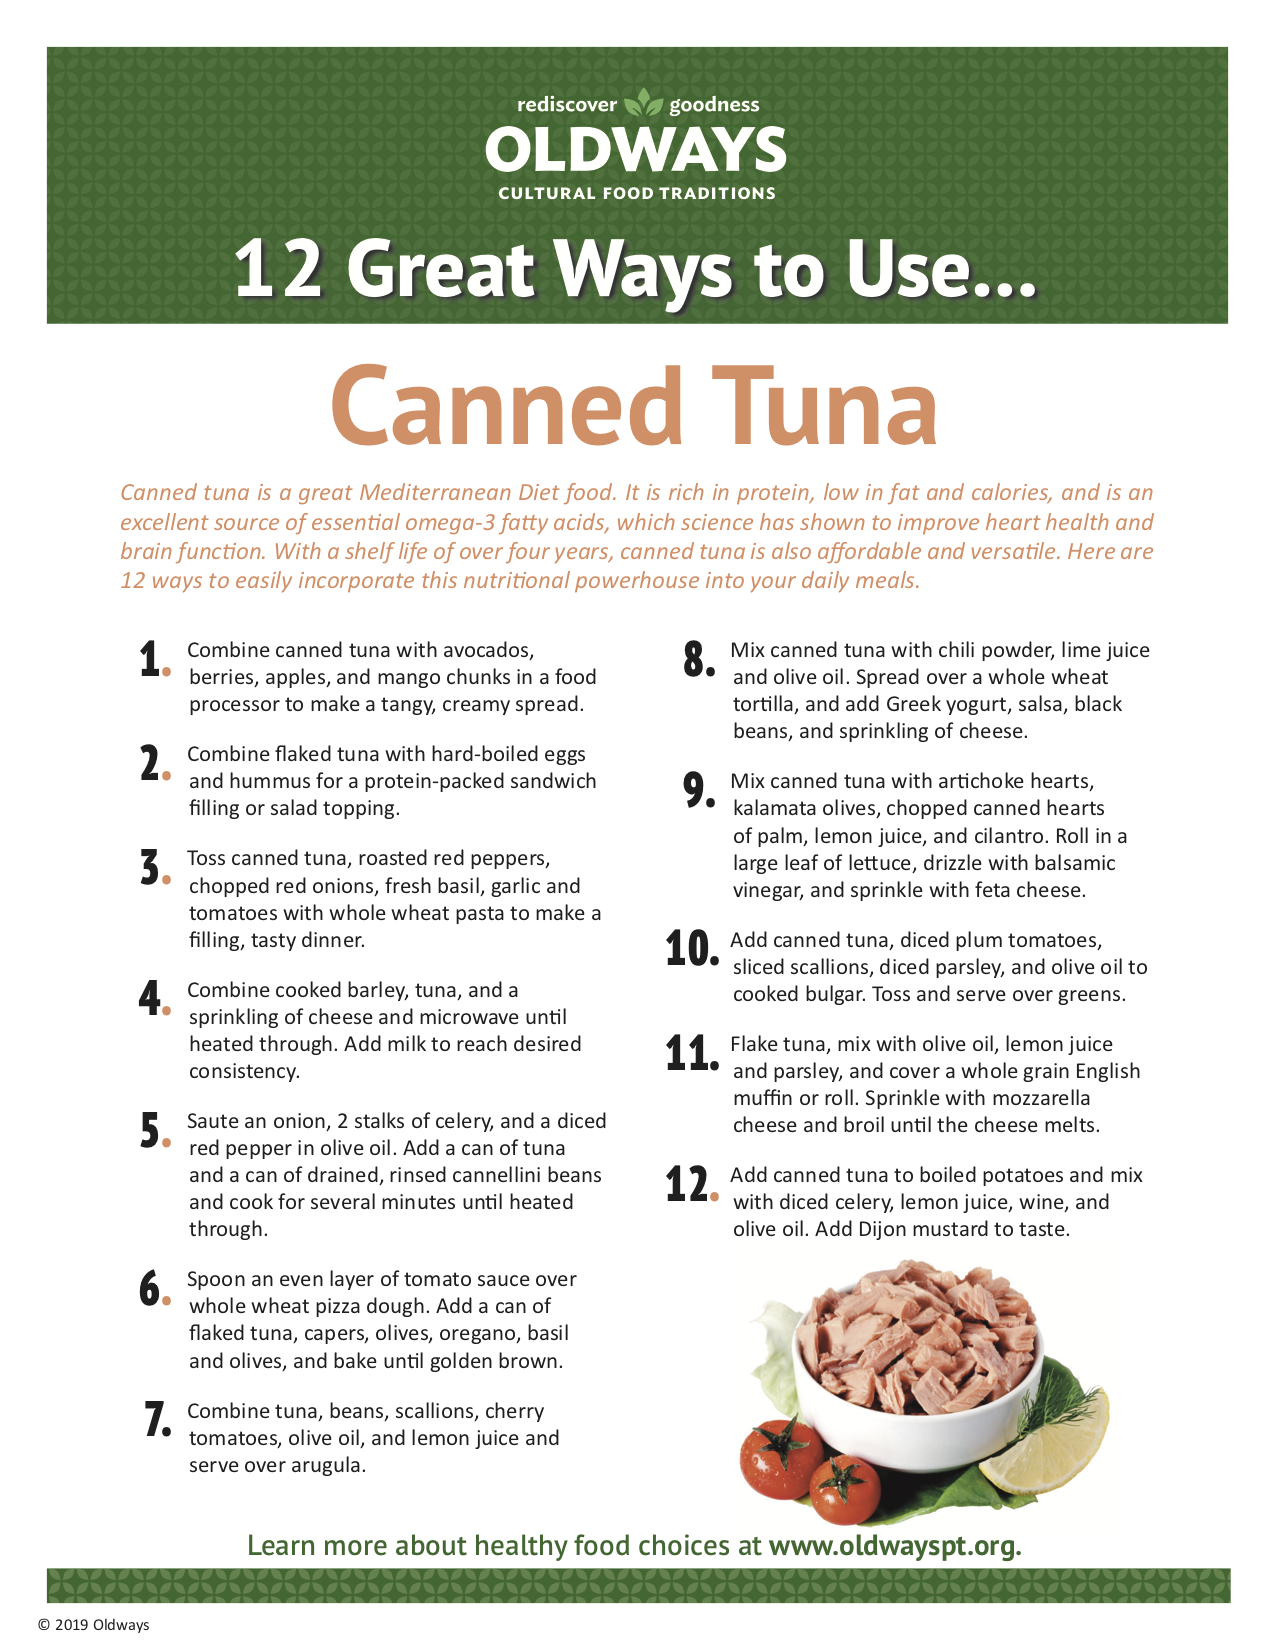 12ways_canned_tuna.png